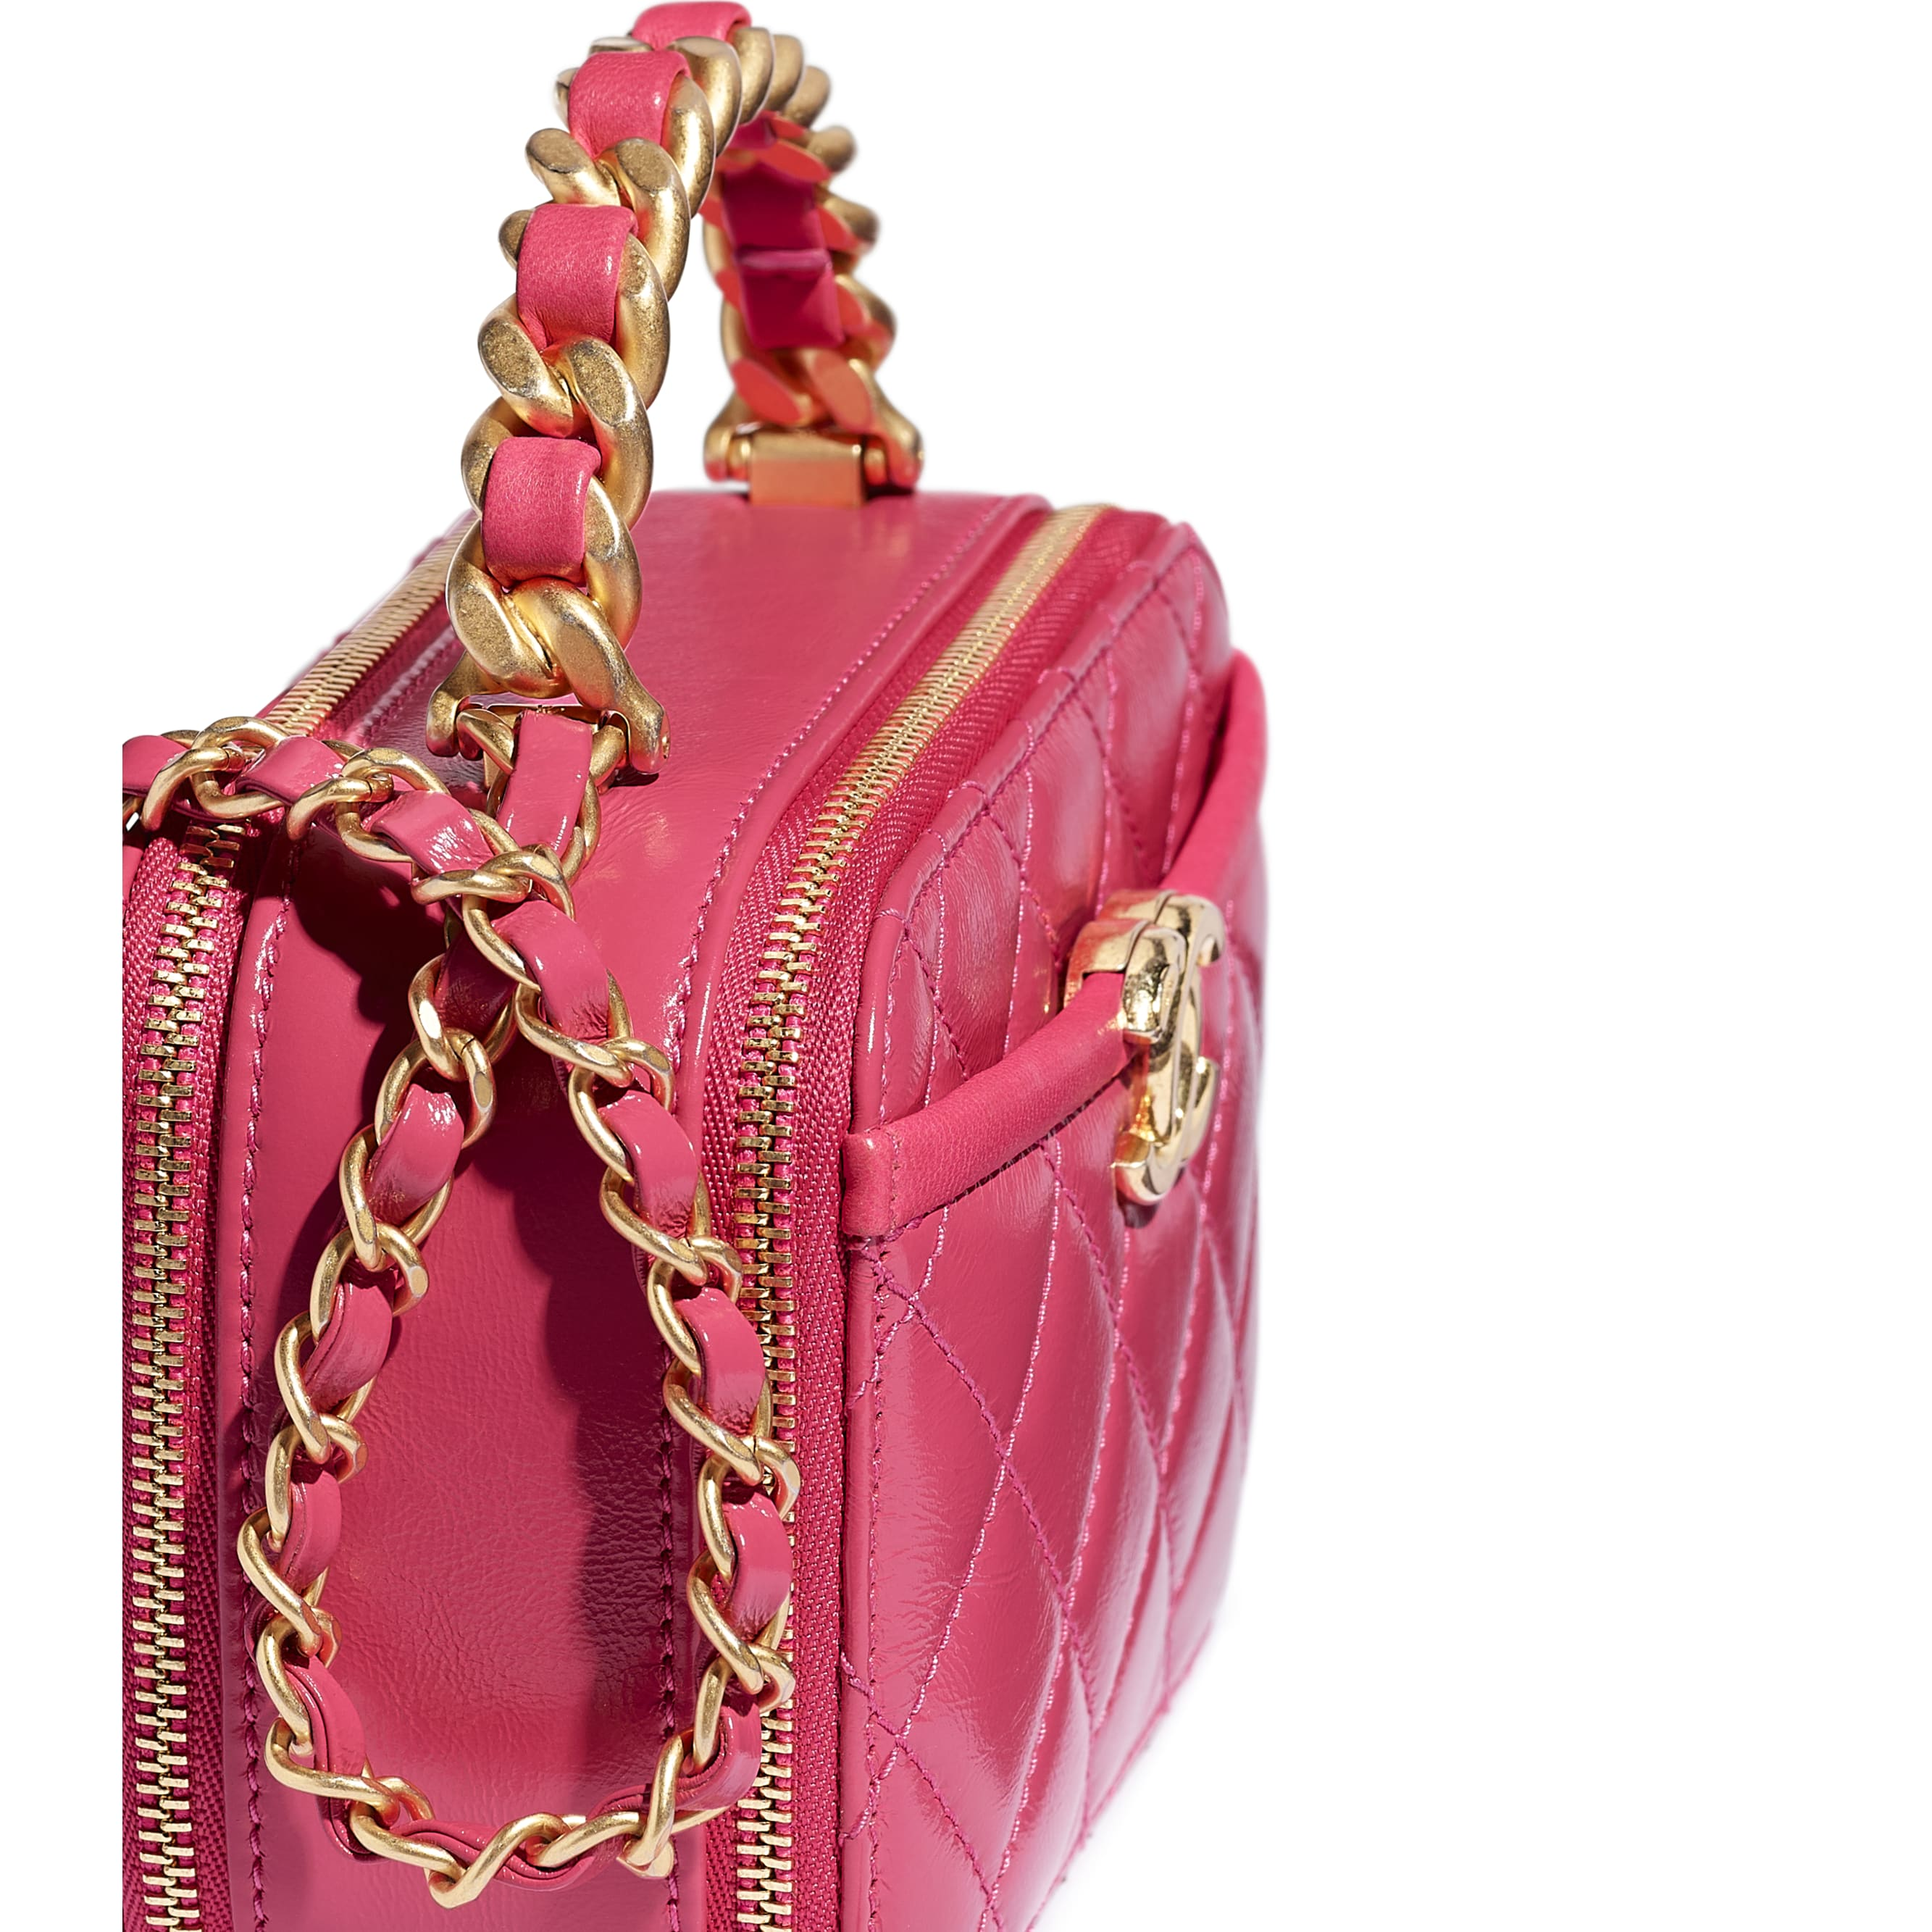 Small Vanity Case - Pink - Lambskin, Shiny Crumpled Calfskin & Gold-Tone Metal - CHANEL - Extra view - see standard sized version